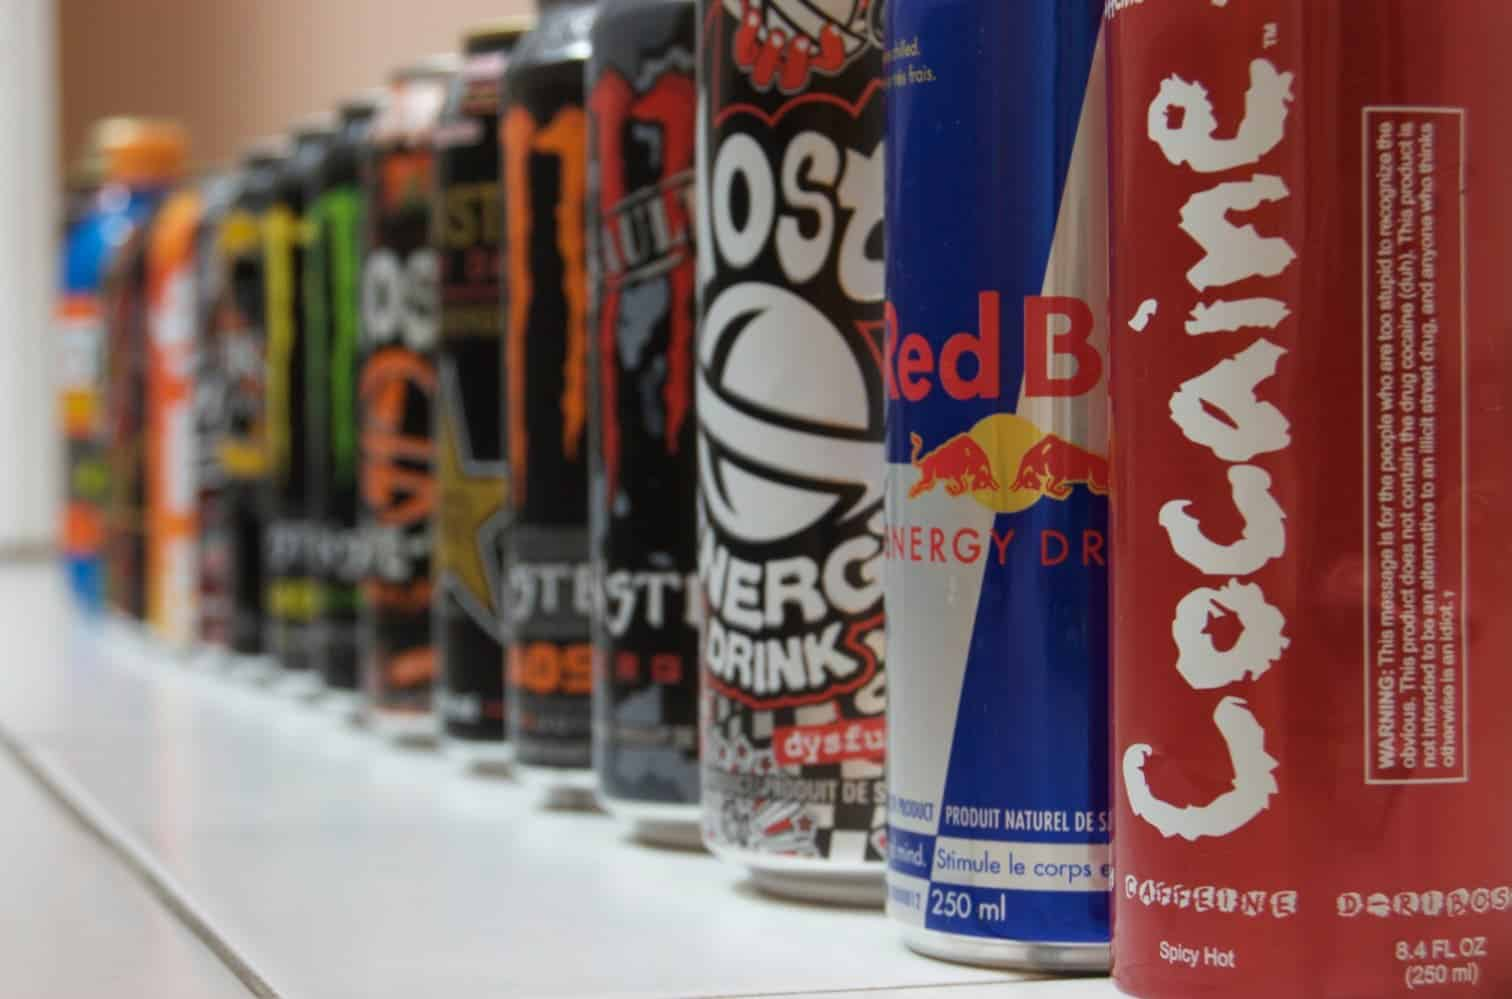 Consumption of energy drink may disrupt vascular function